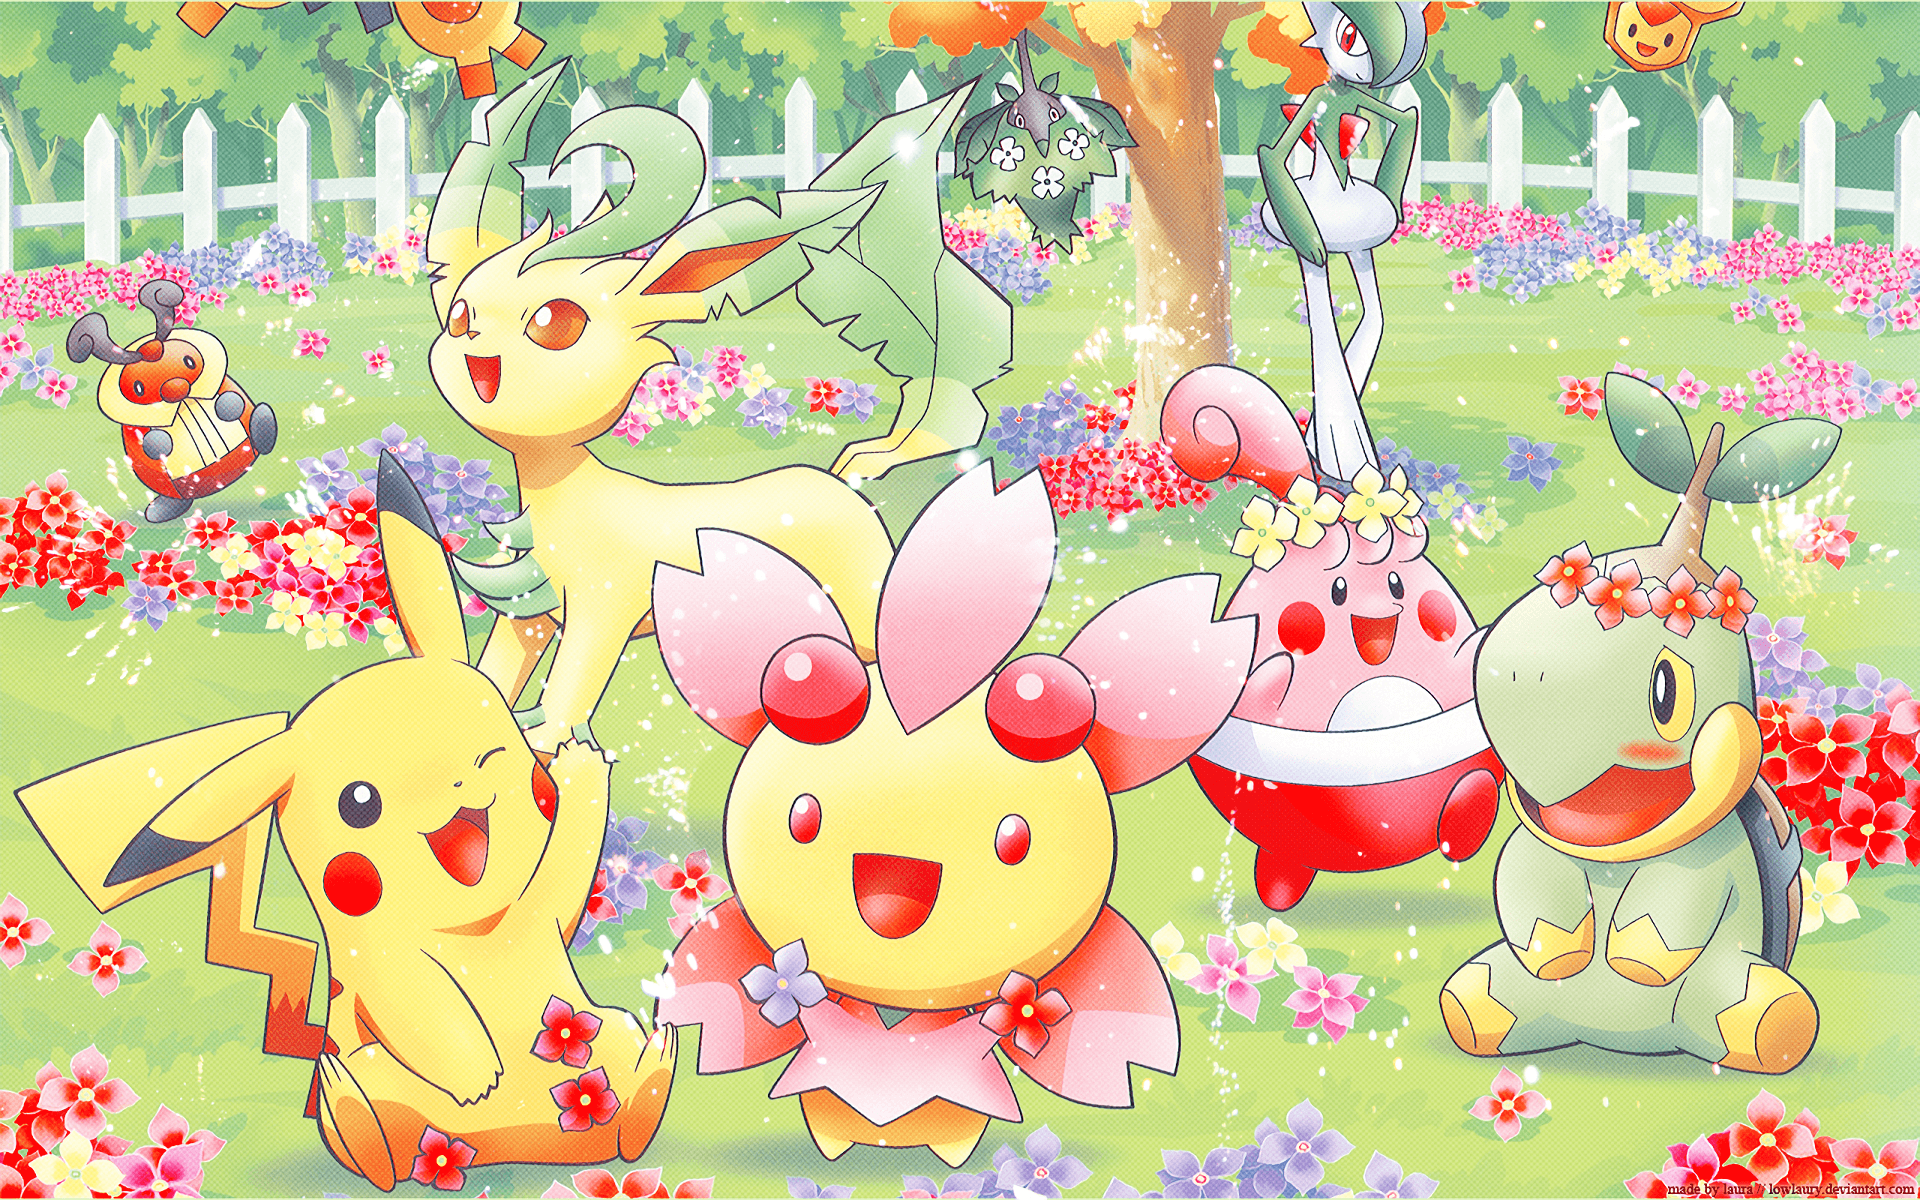 Pokémon Spring Full HD Wallpaper and Background Image | 1920x1200 ...